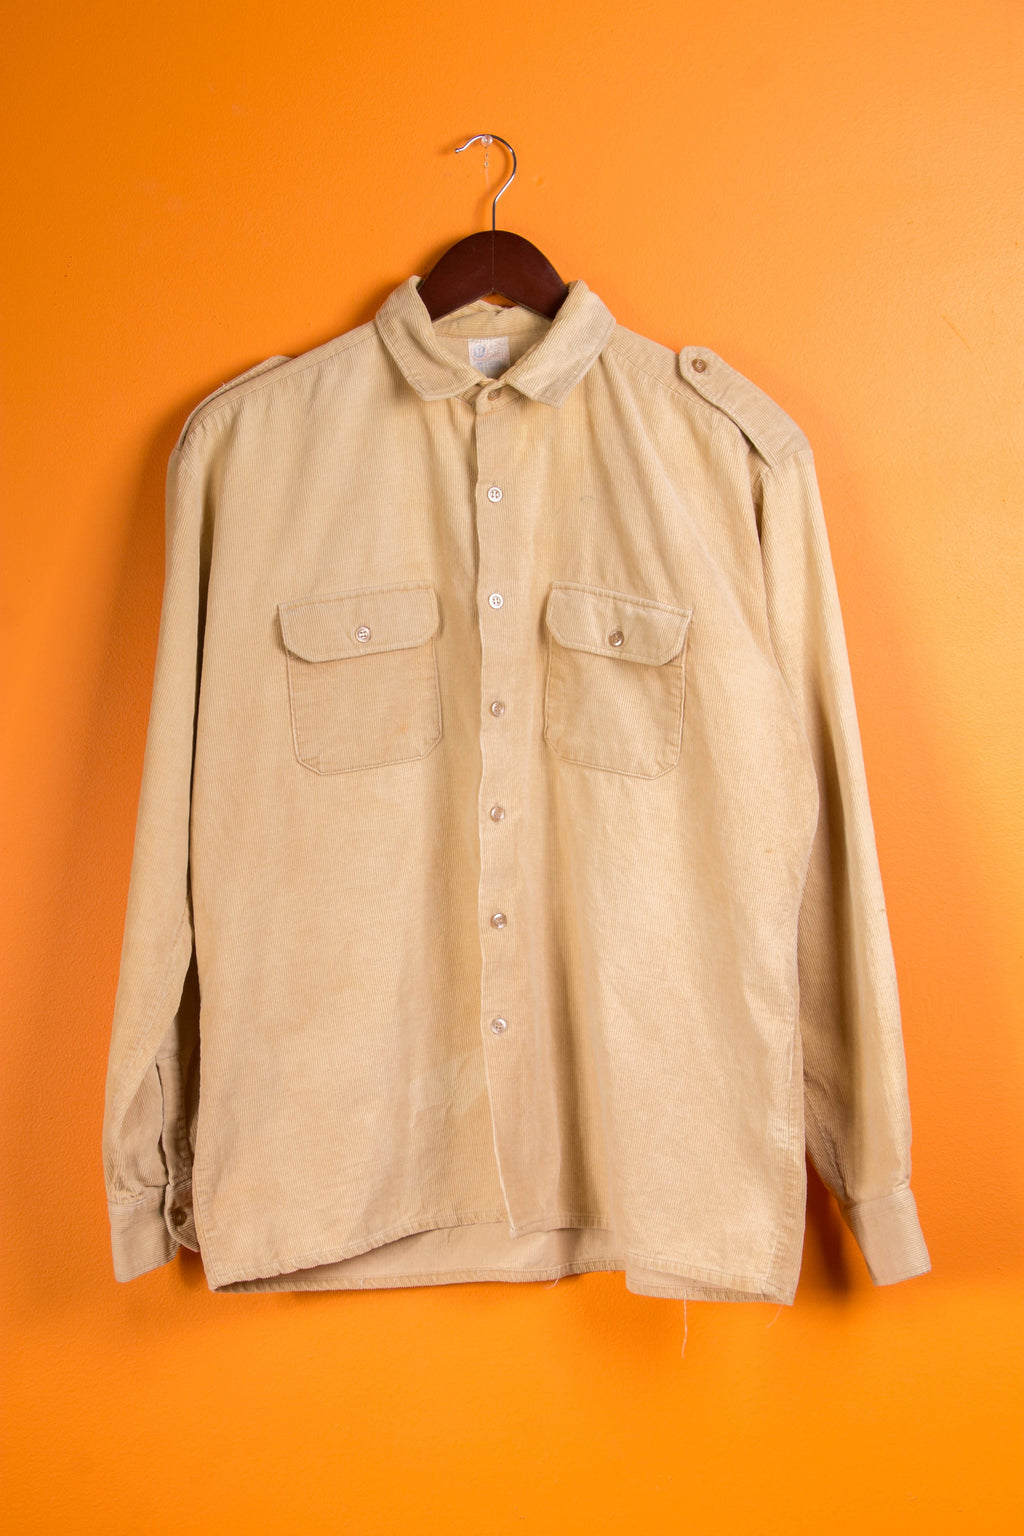 Vintage - corduroy button up